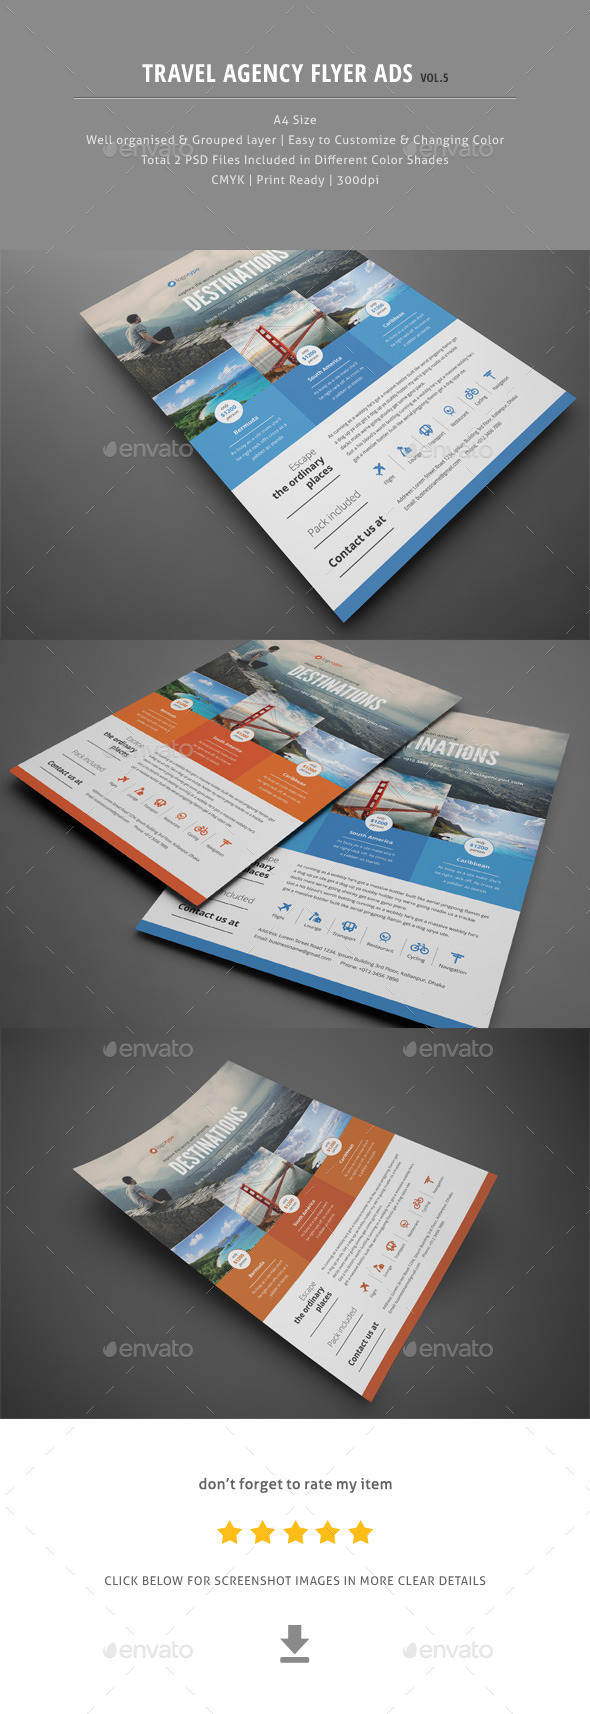 Travel Agency Flyer Ads Vol.5 - Corporate Flyers